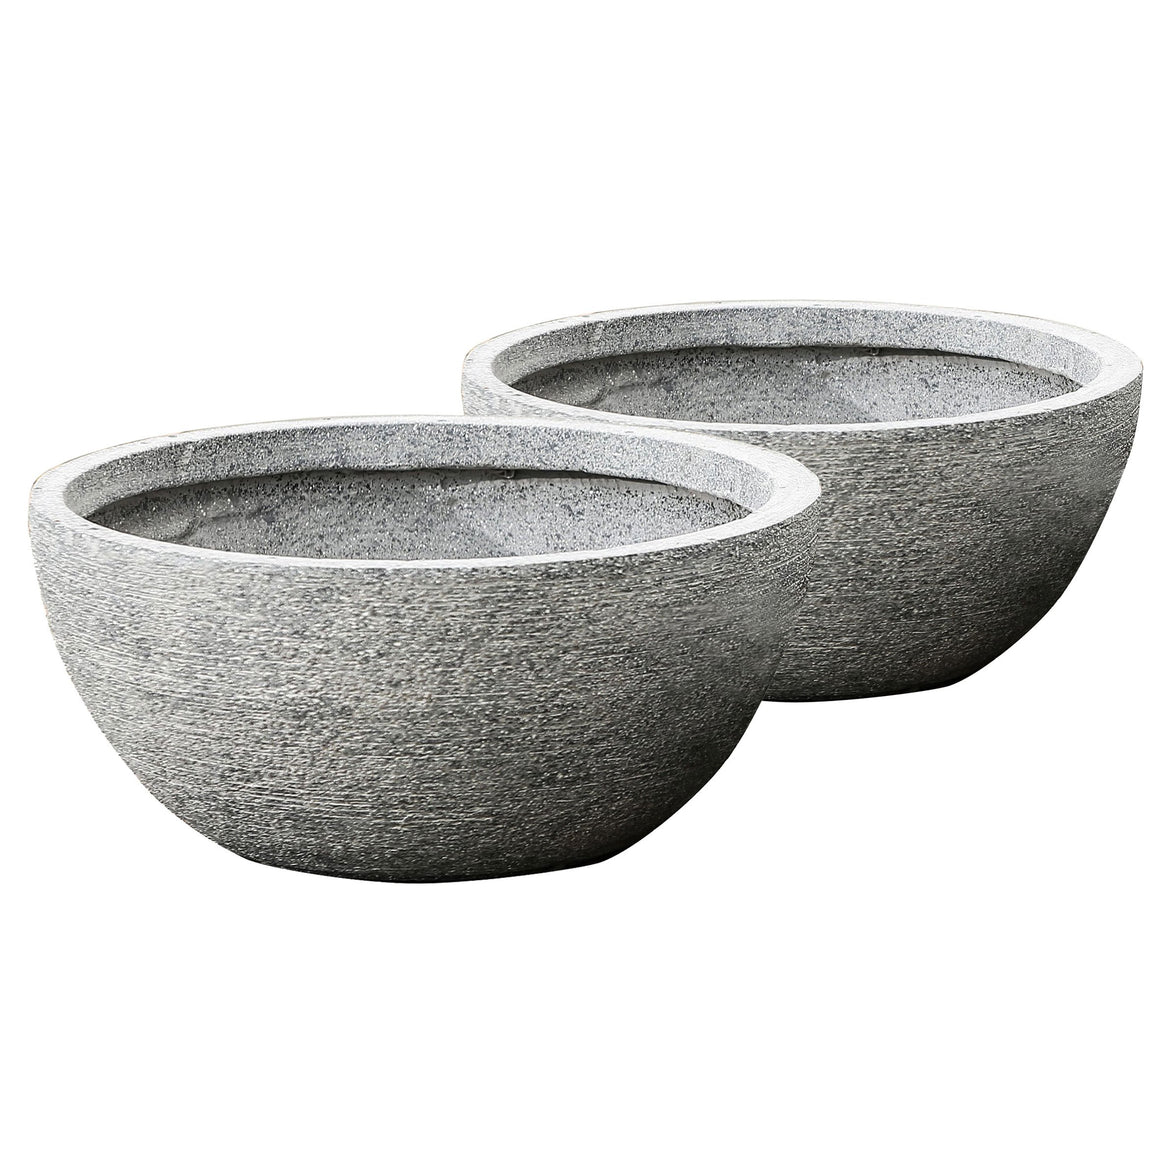 Round Bowl Garden Planters made of Fiberclay - 2 Bowls grey color